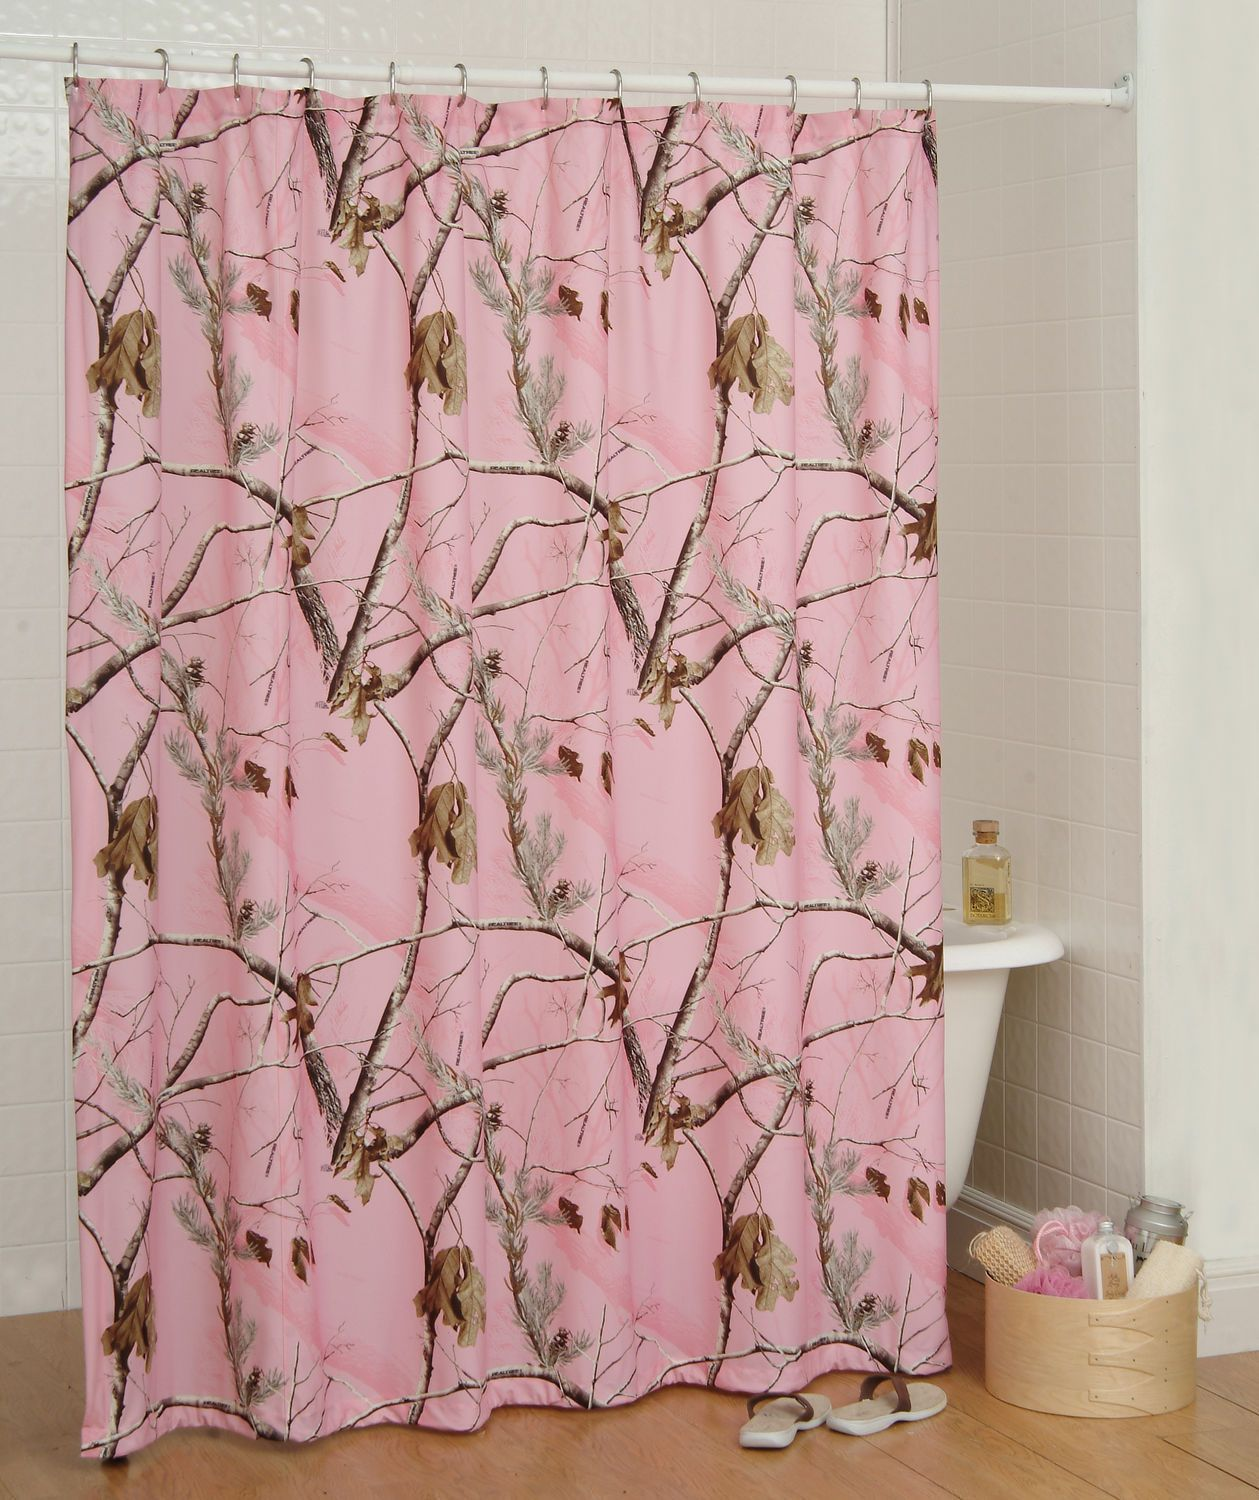 Realtree Ap Pink Camouflage Shower Curtain Camo Bath Accessories Camo